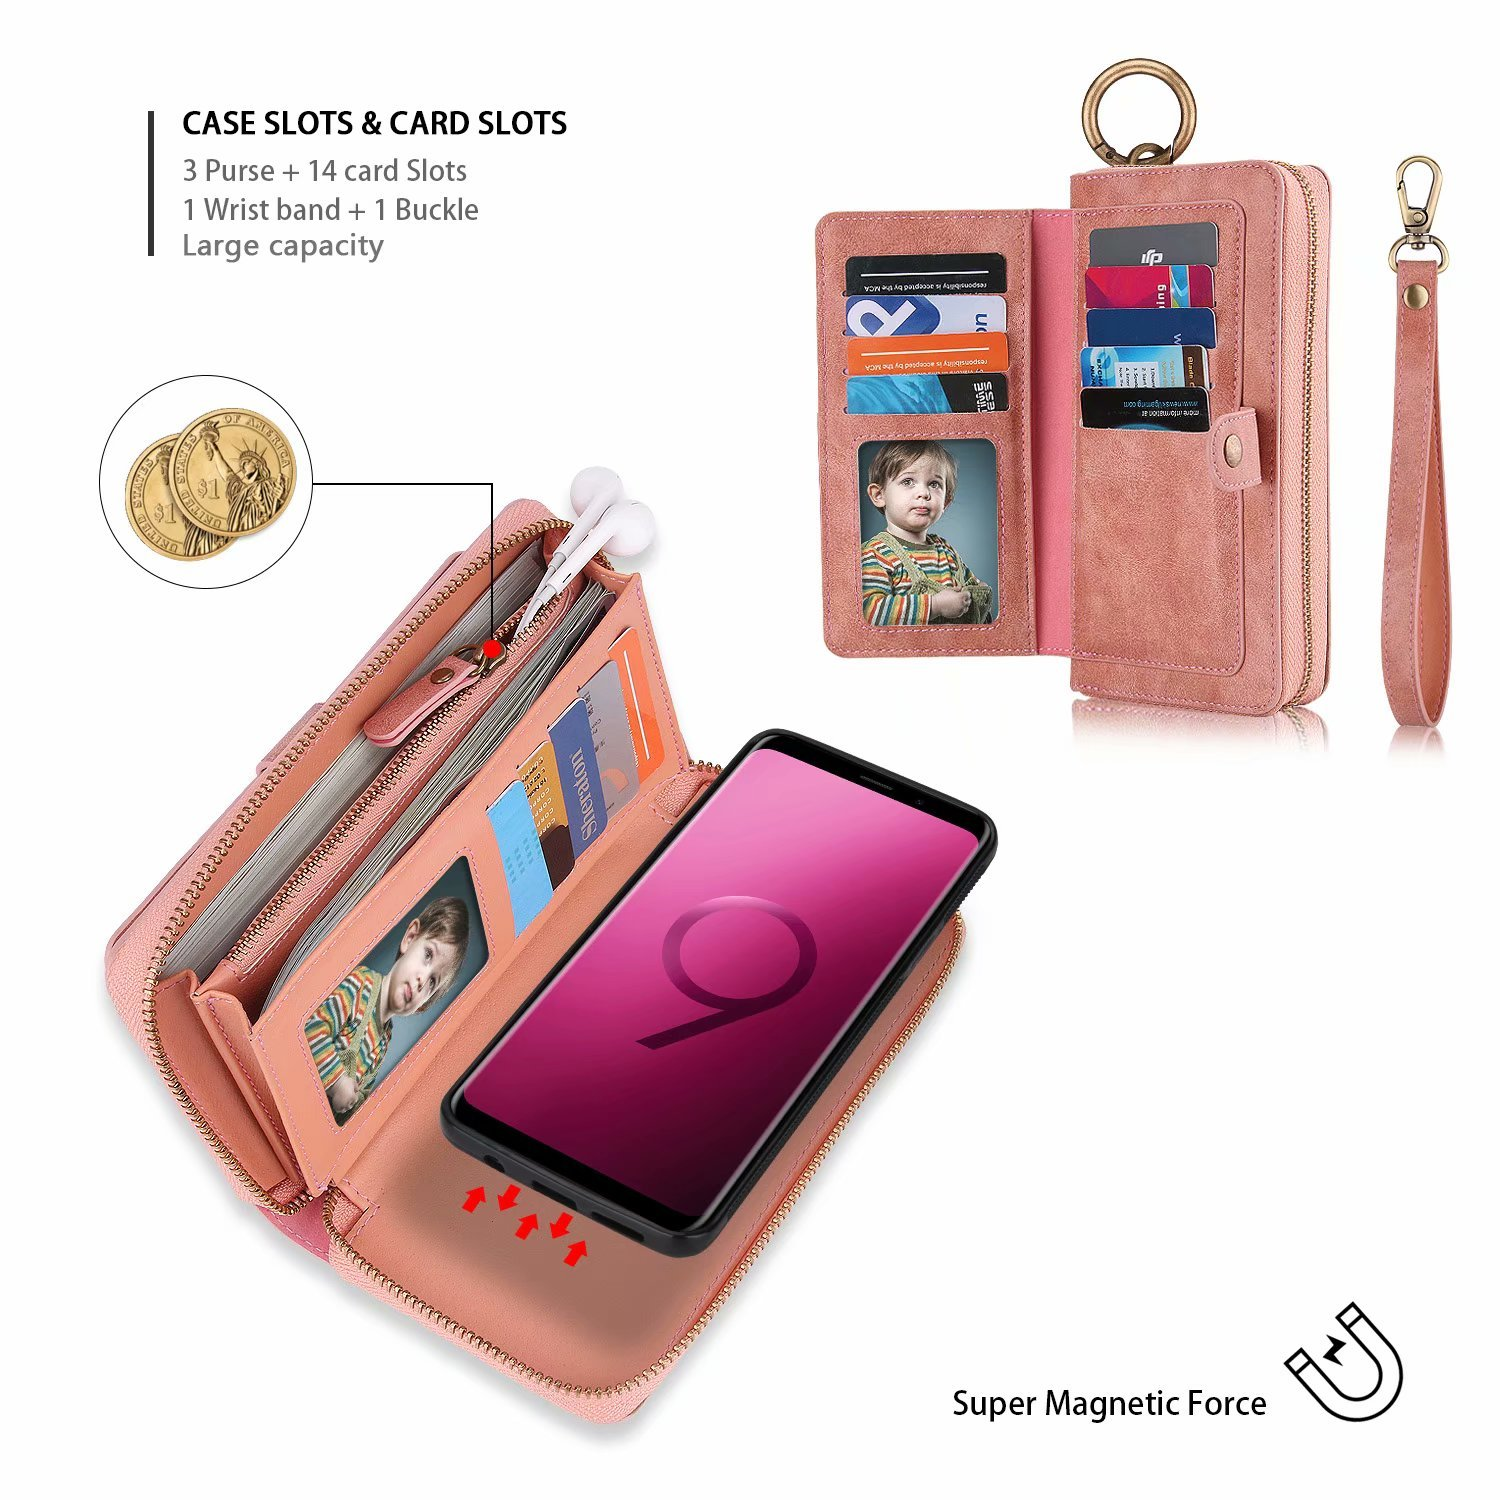 Galaxy S9 Plus Wallet Phone Case,GX-LV Samsung Galaxy S9 Plus Wallet Case Leather Case Cover Zipper Pouch with 14 Card Holder,Magnetic Detachable Case For Samsung Galaxy S9 Plus (Pink) by GX-LV (Image #4)